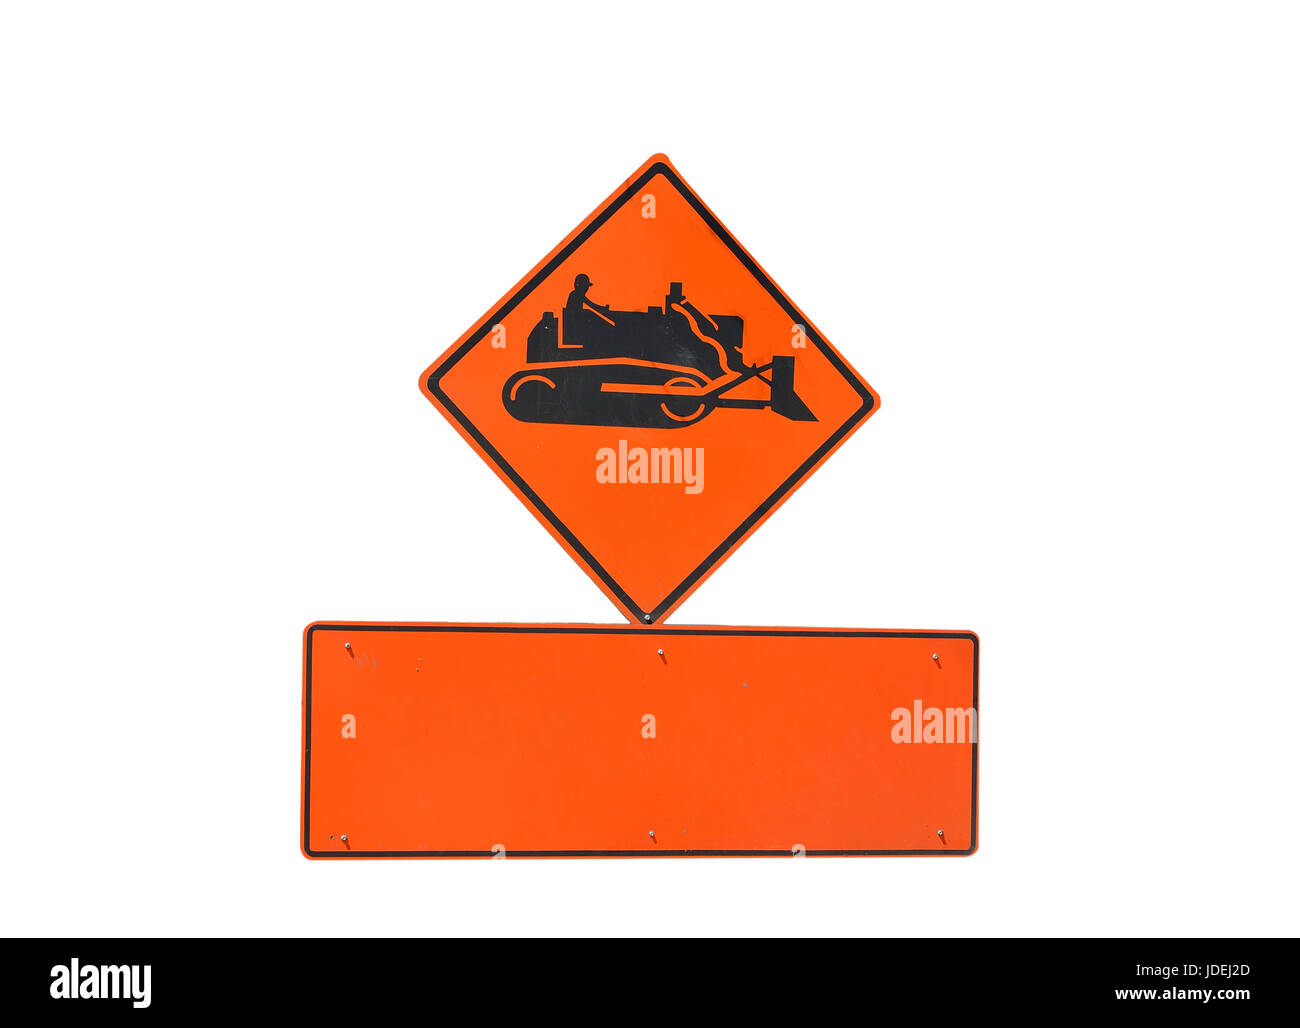 Construction tractor warning sign - Stock Image